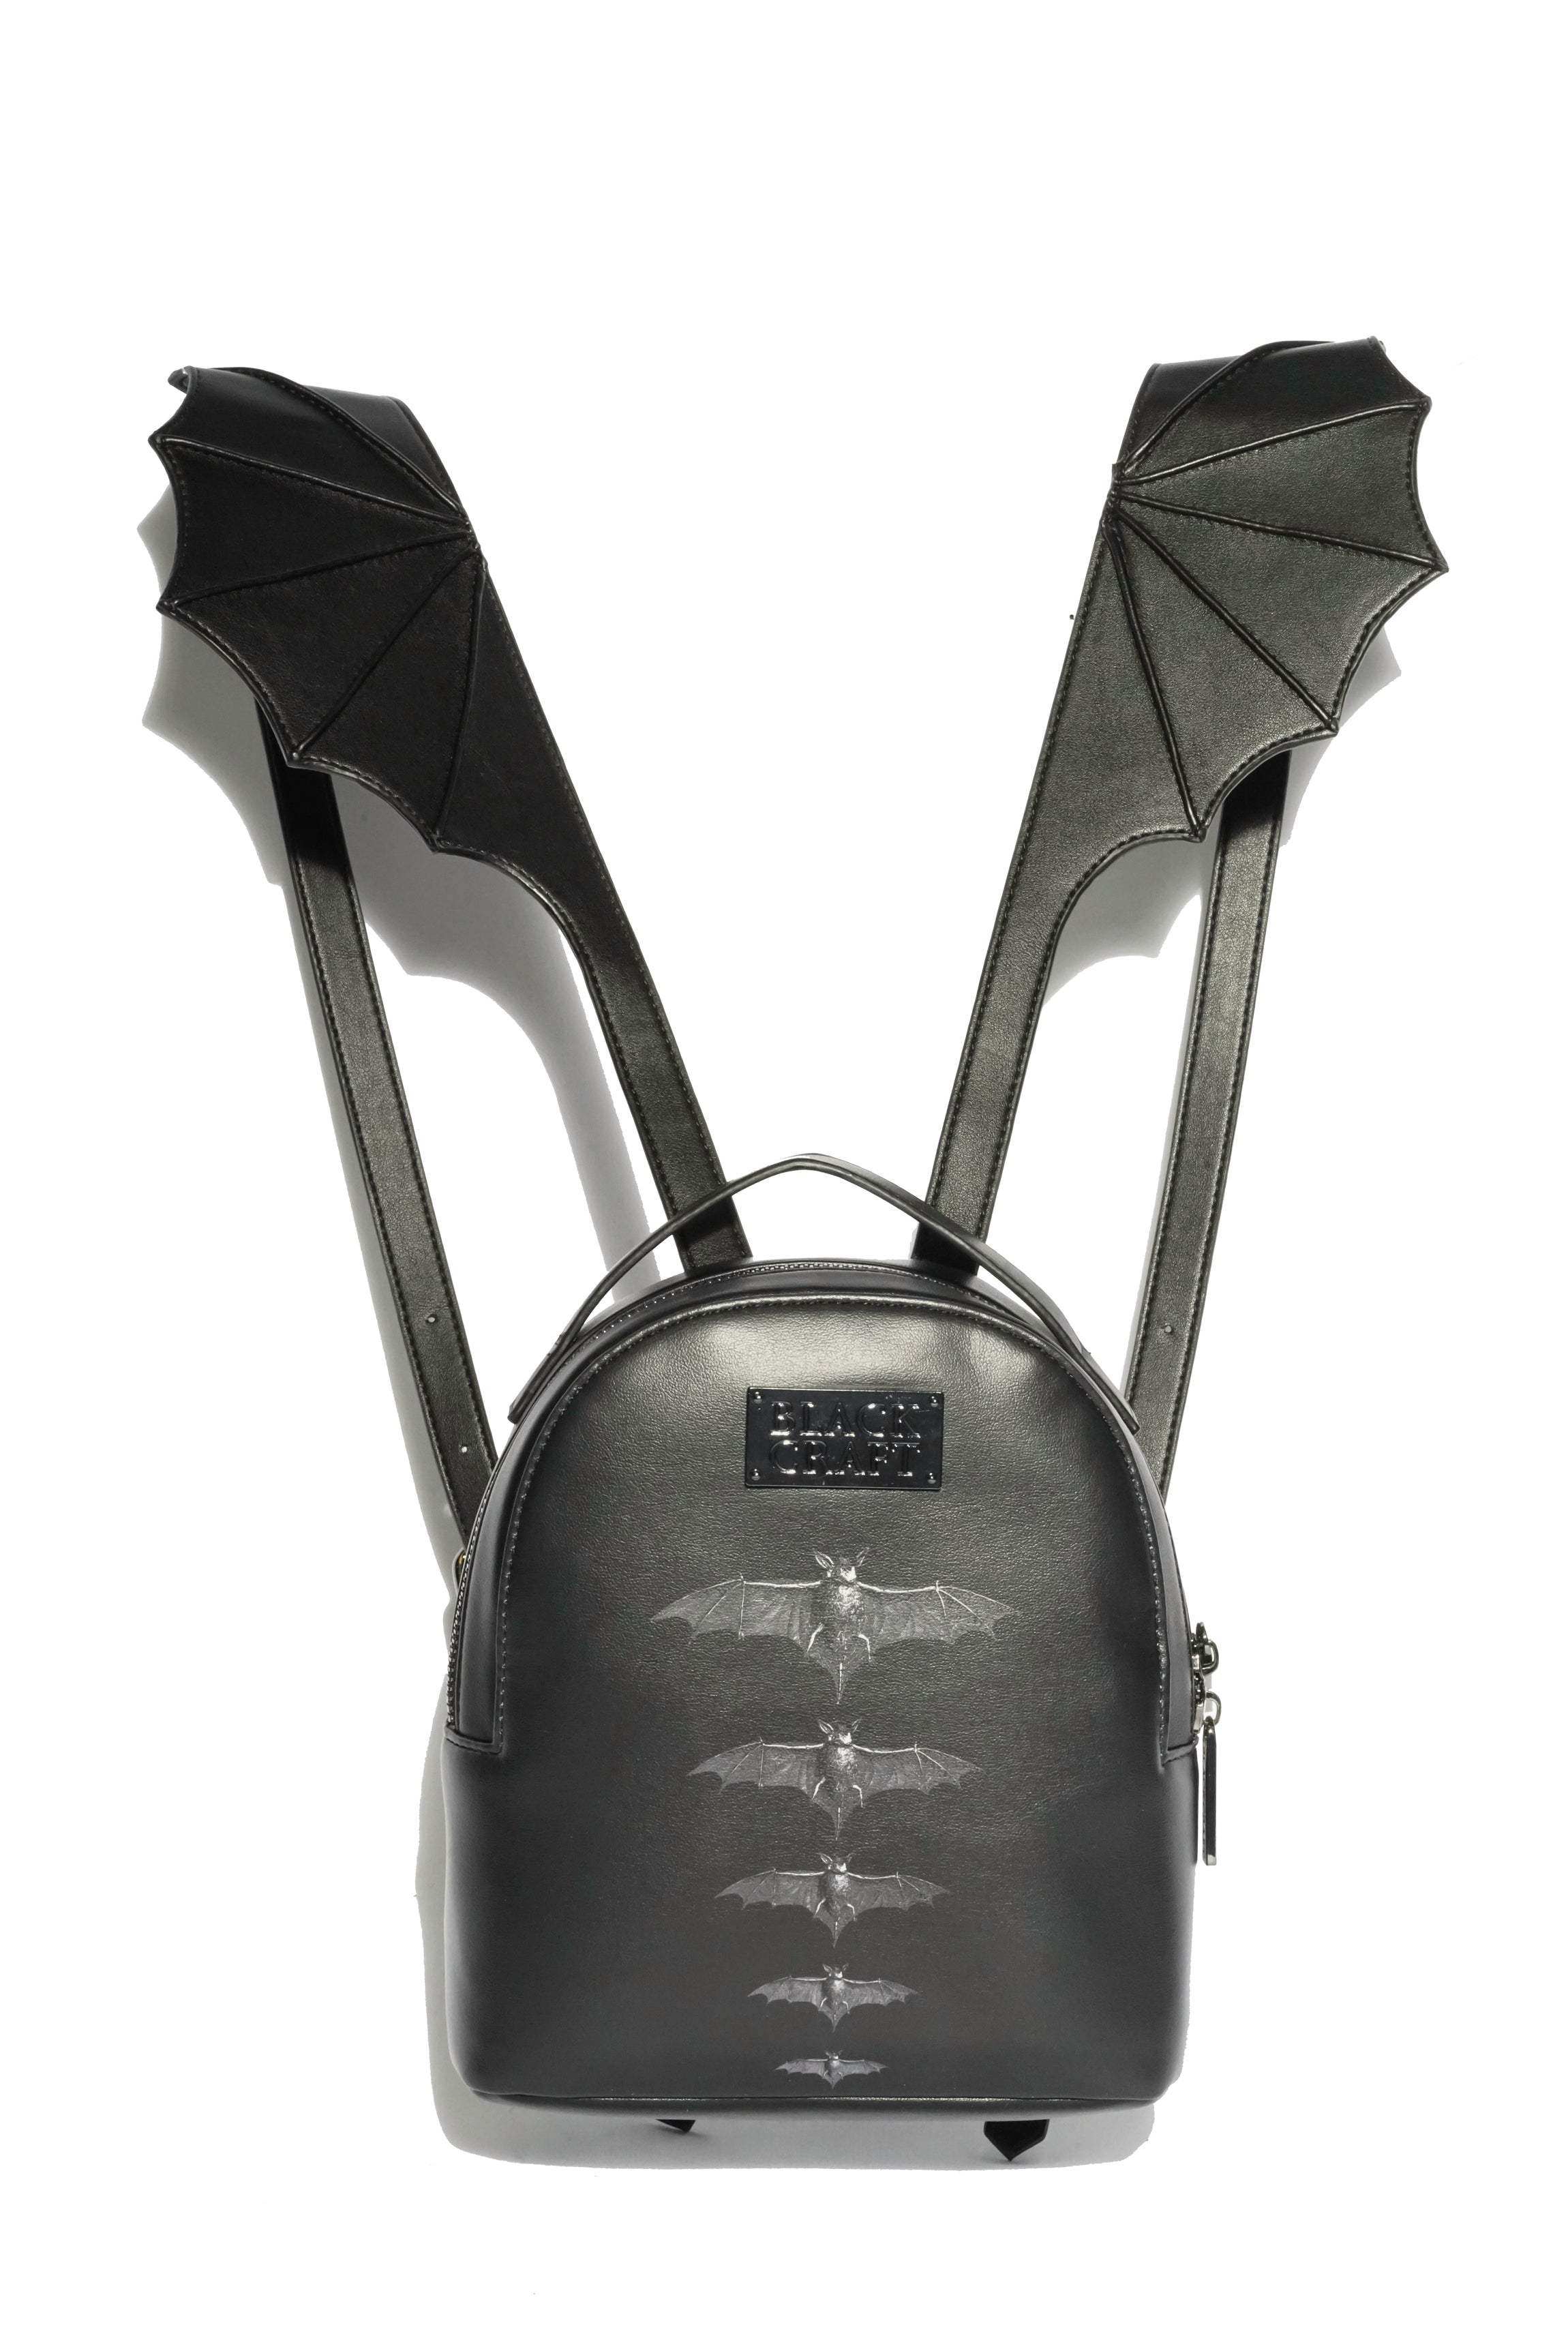 Mini Bat Wing Backpack